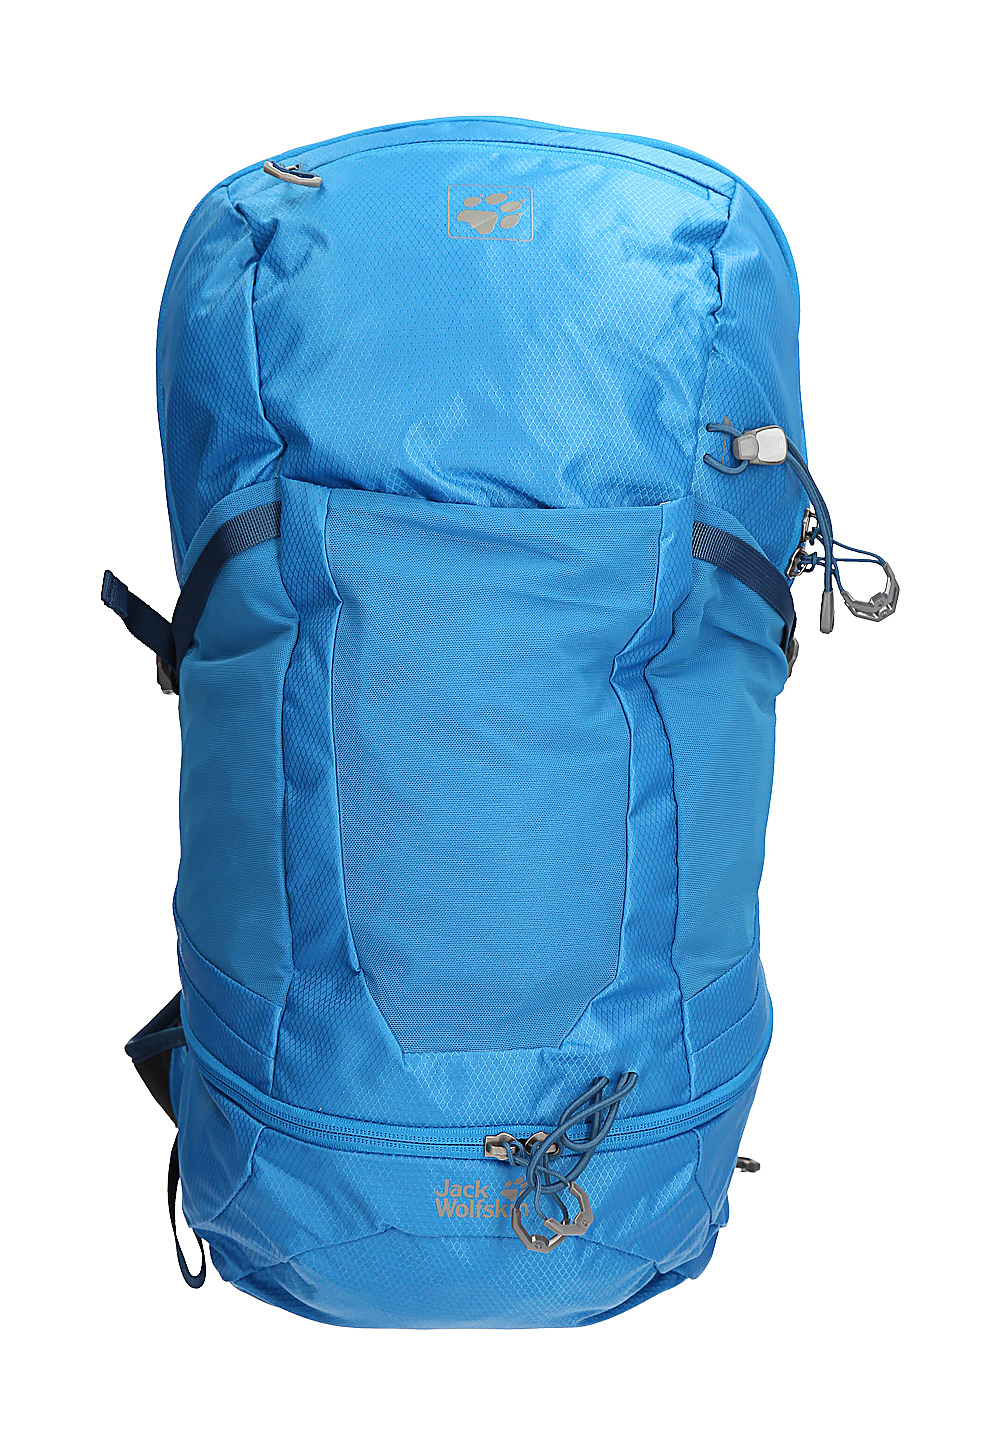 Rucksack Kingston 30, B25 x H58 x T20 cm blau